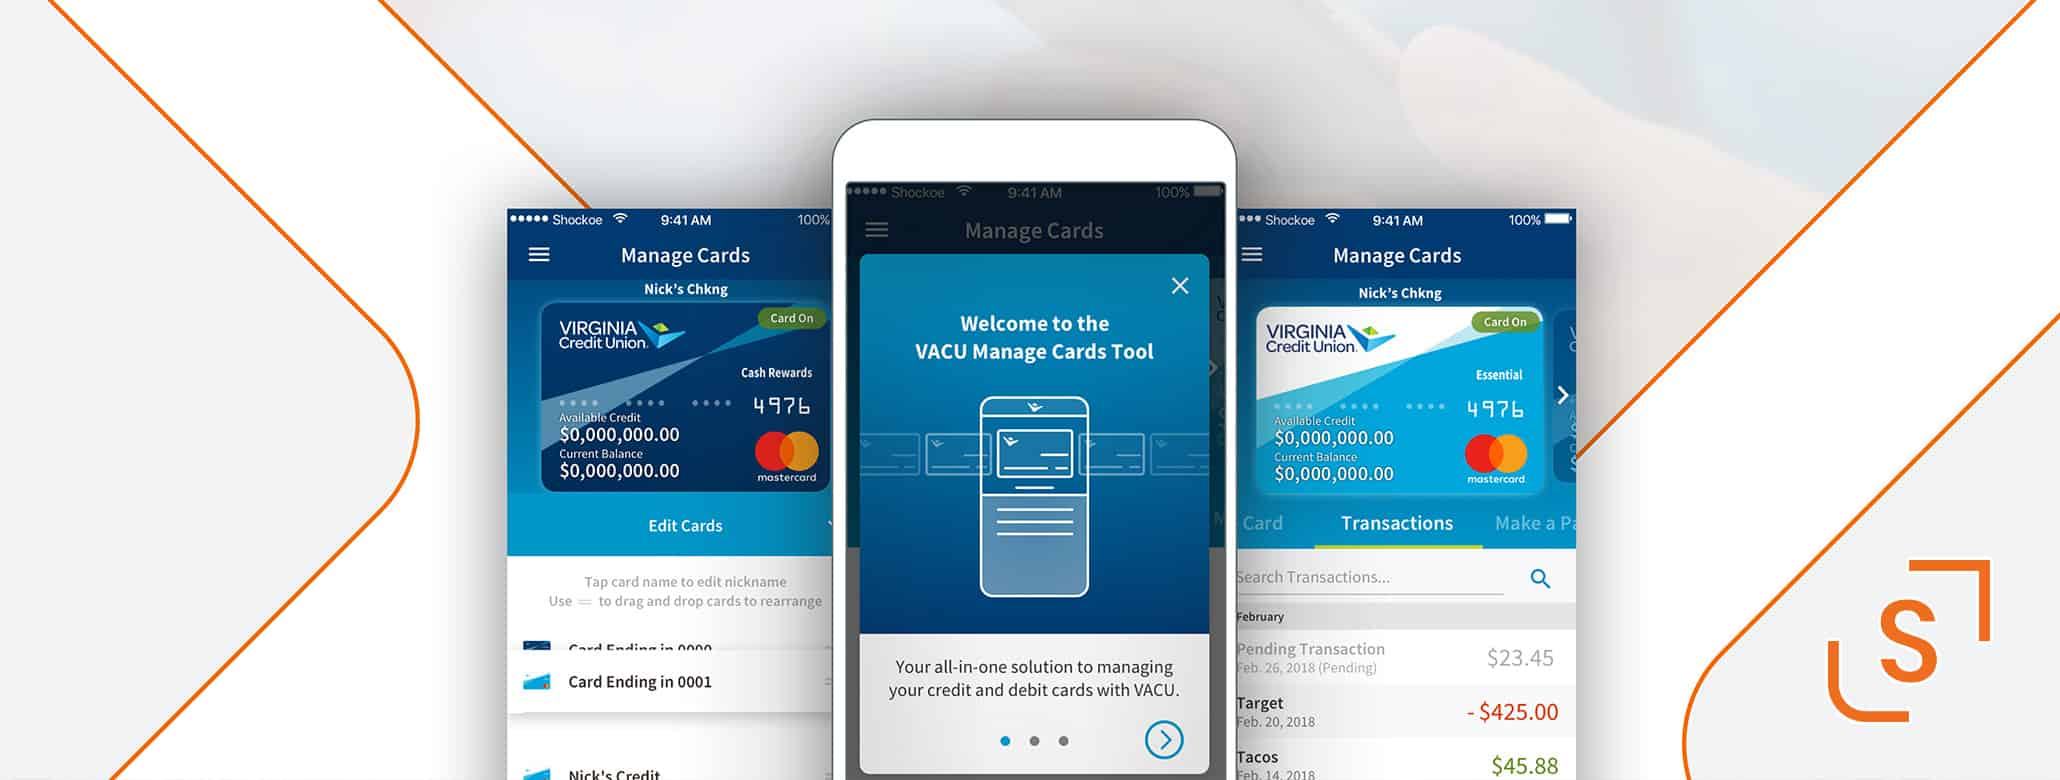 Design Tips to Increase Satisfaction in Banking Apps – Part 2 of 2